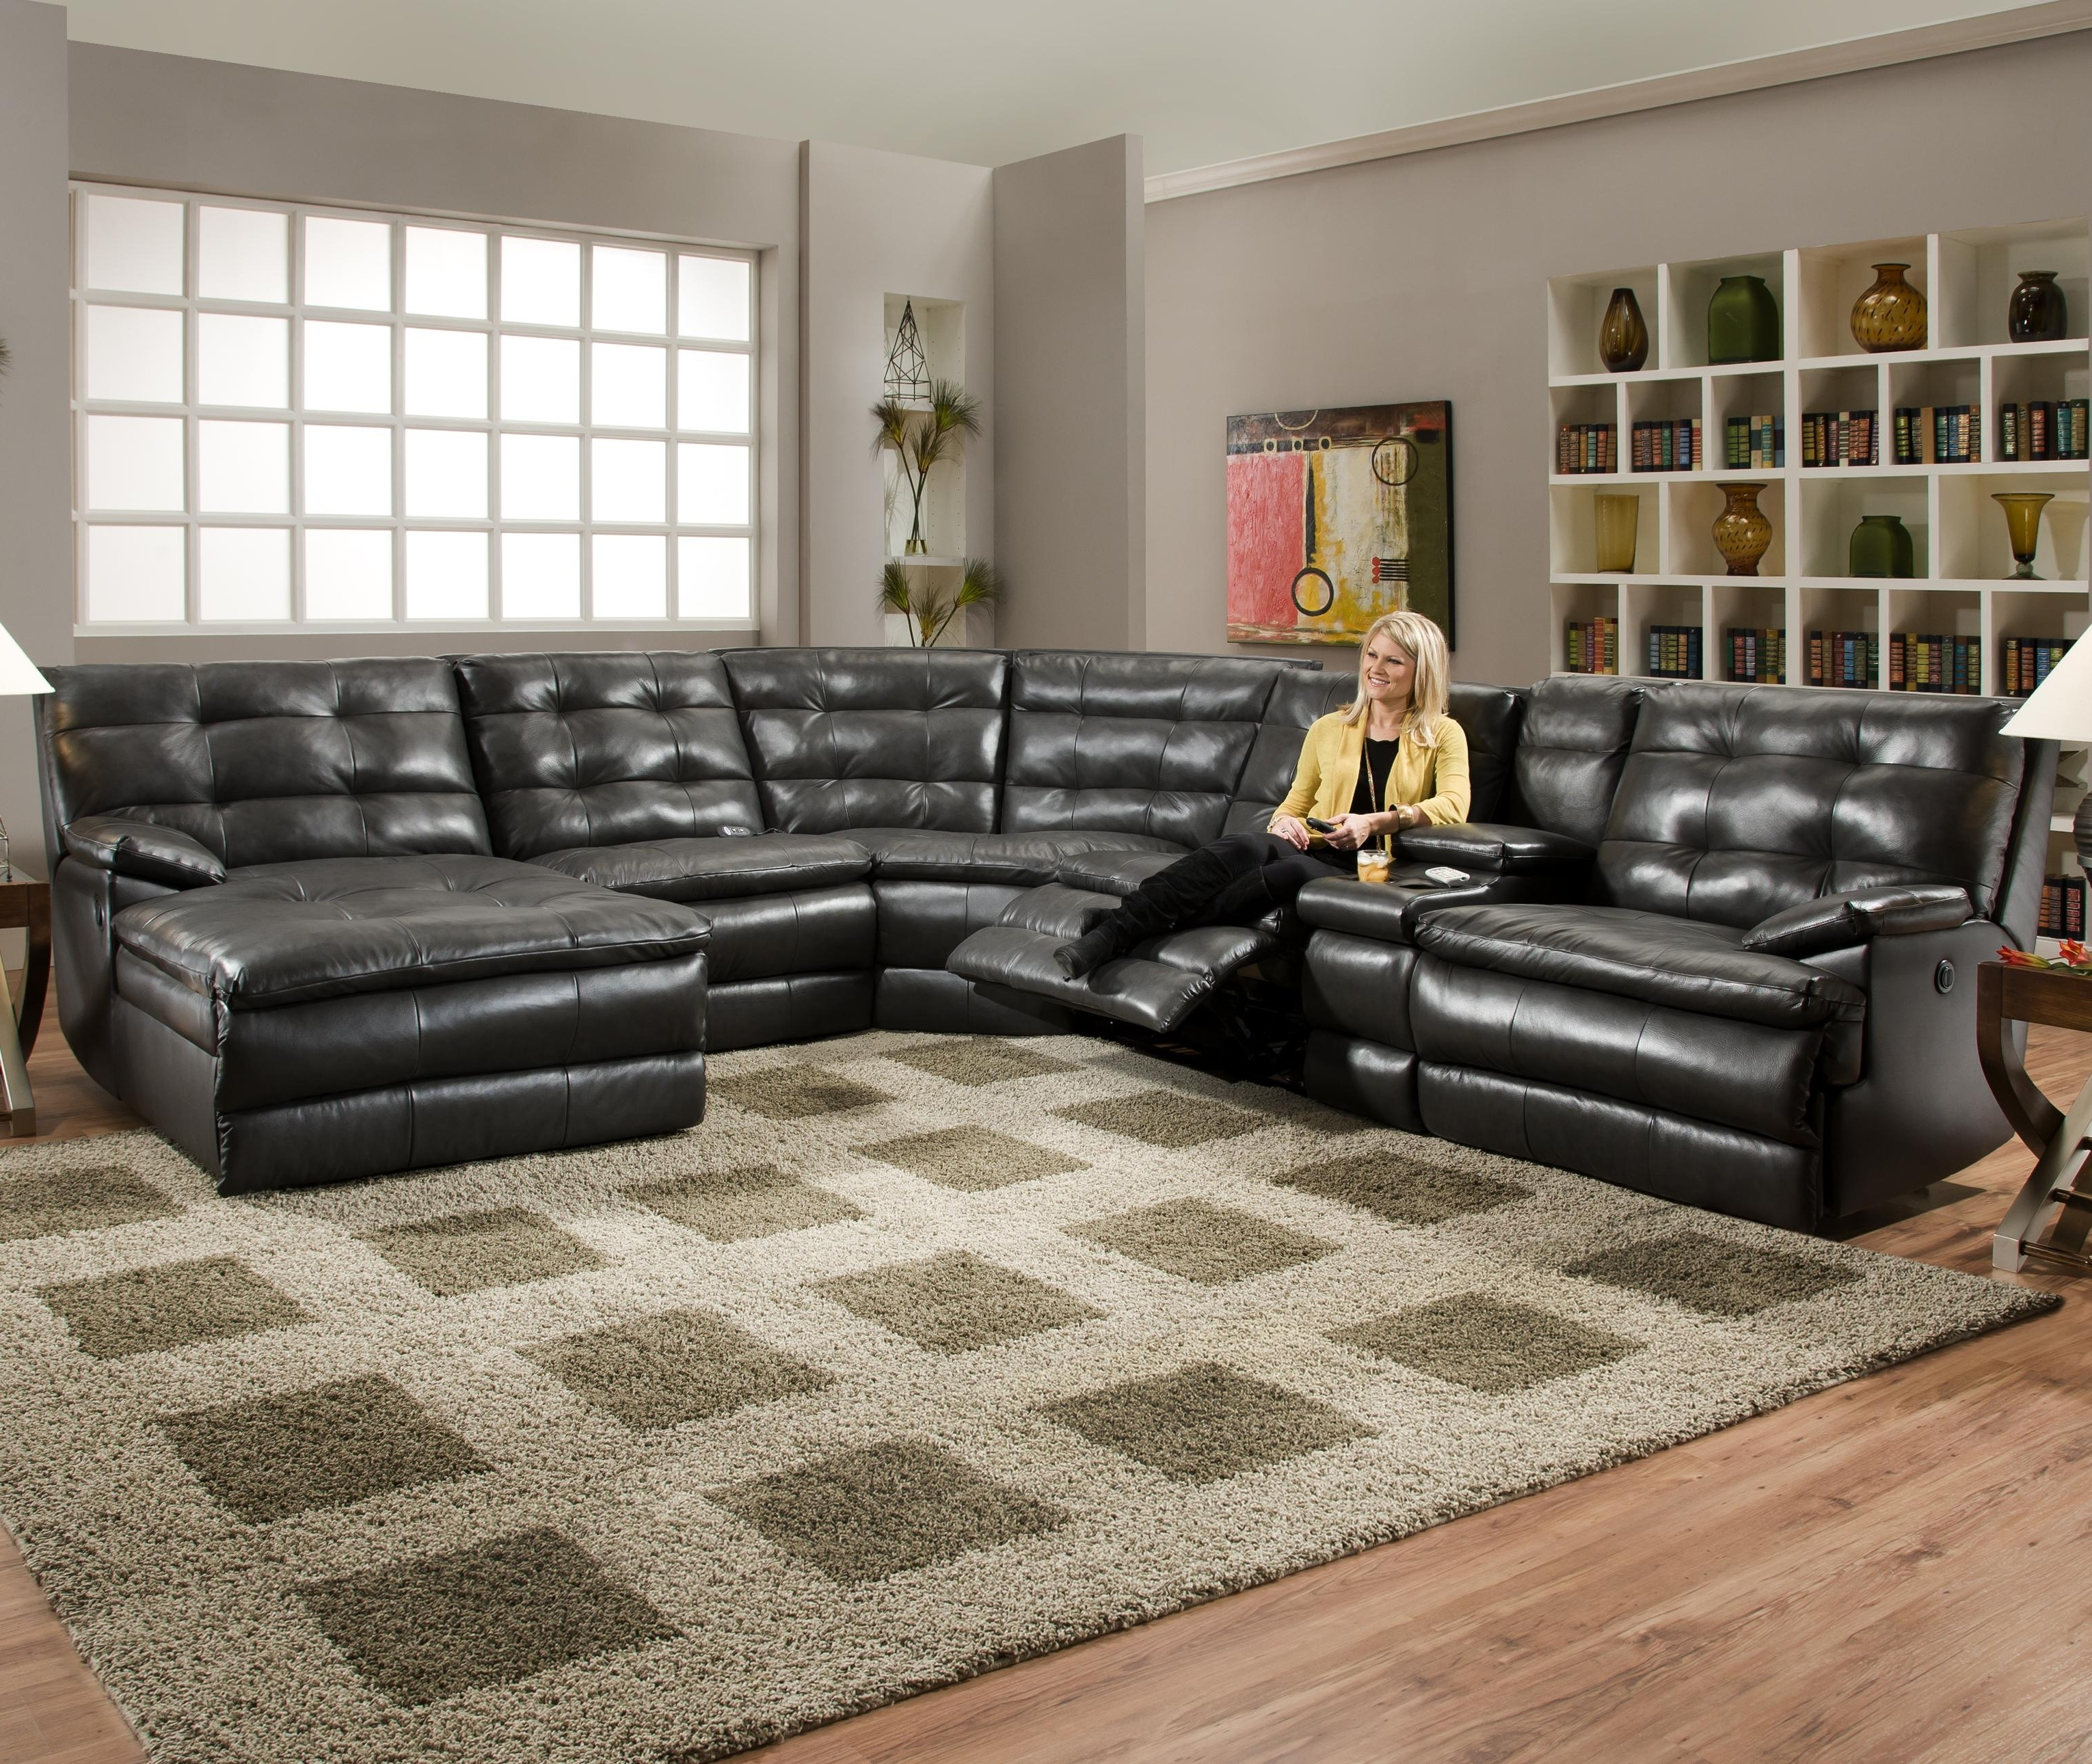 Power Reclining Sectional Reviews Dak Durablend® 6 Piece Sectional Throughout 2019 Sectional Sofas At Sam's Club (View 11 of 20)